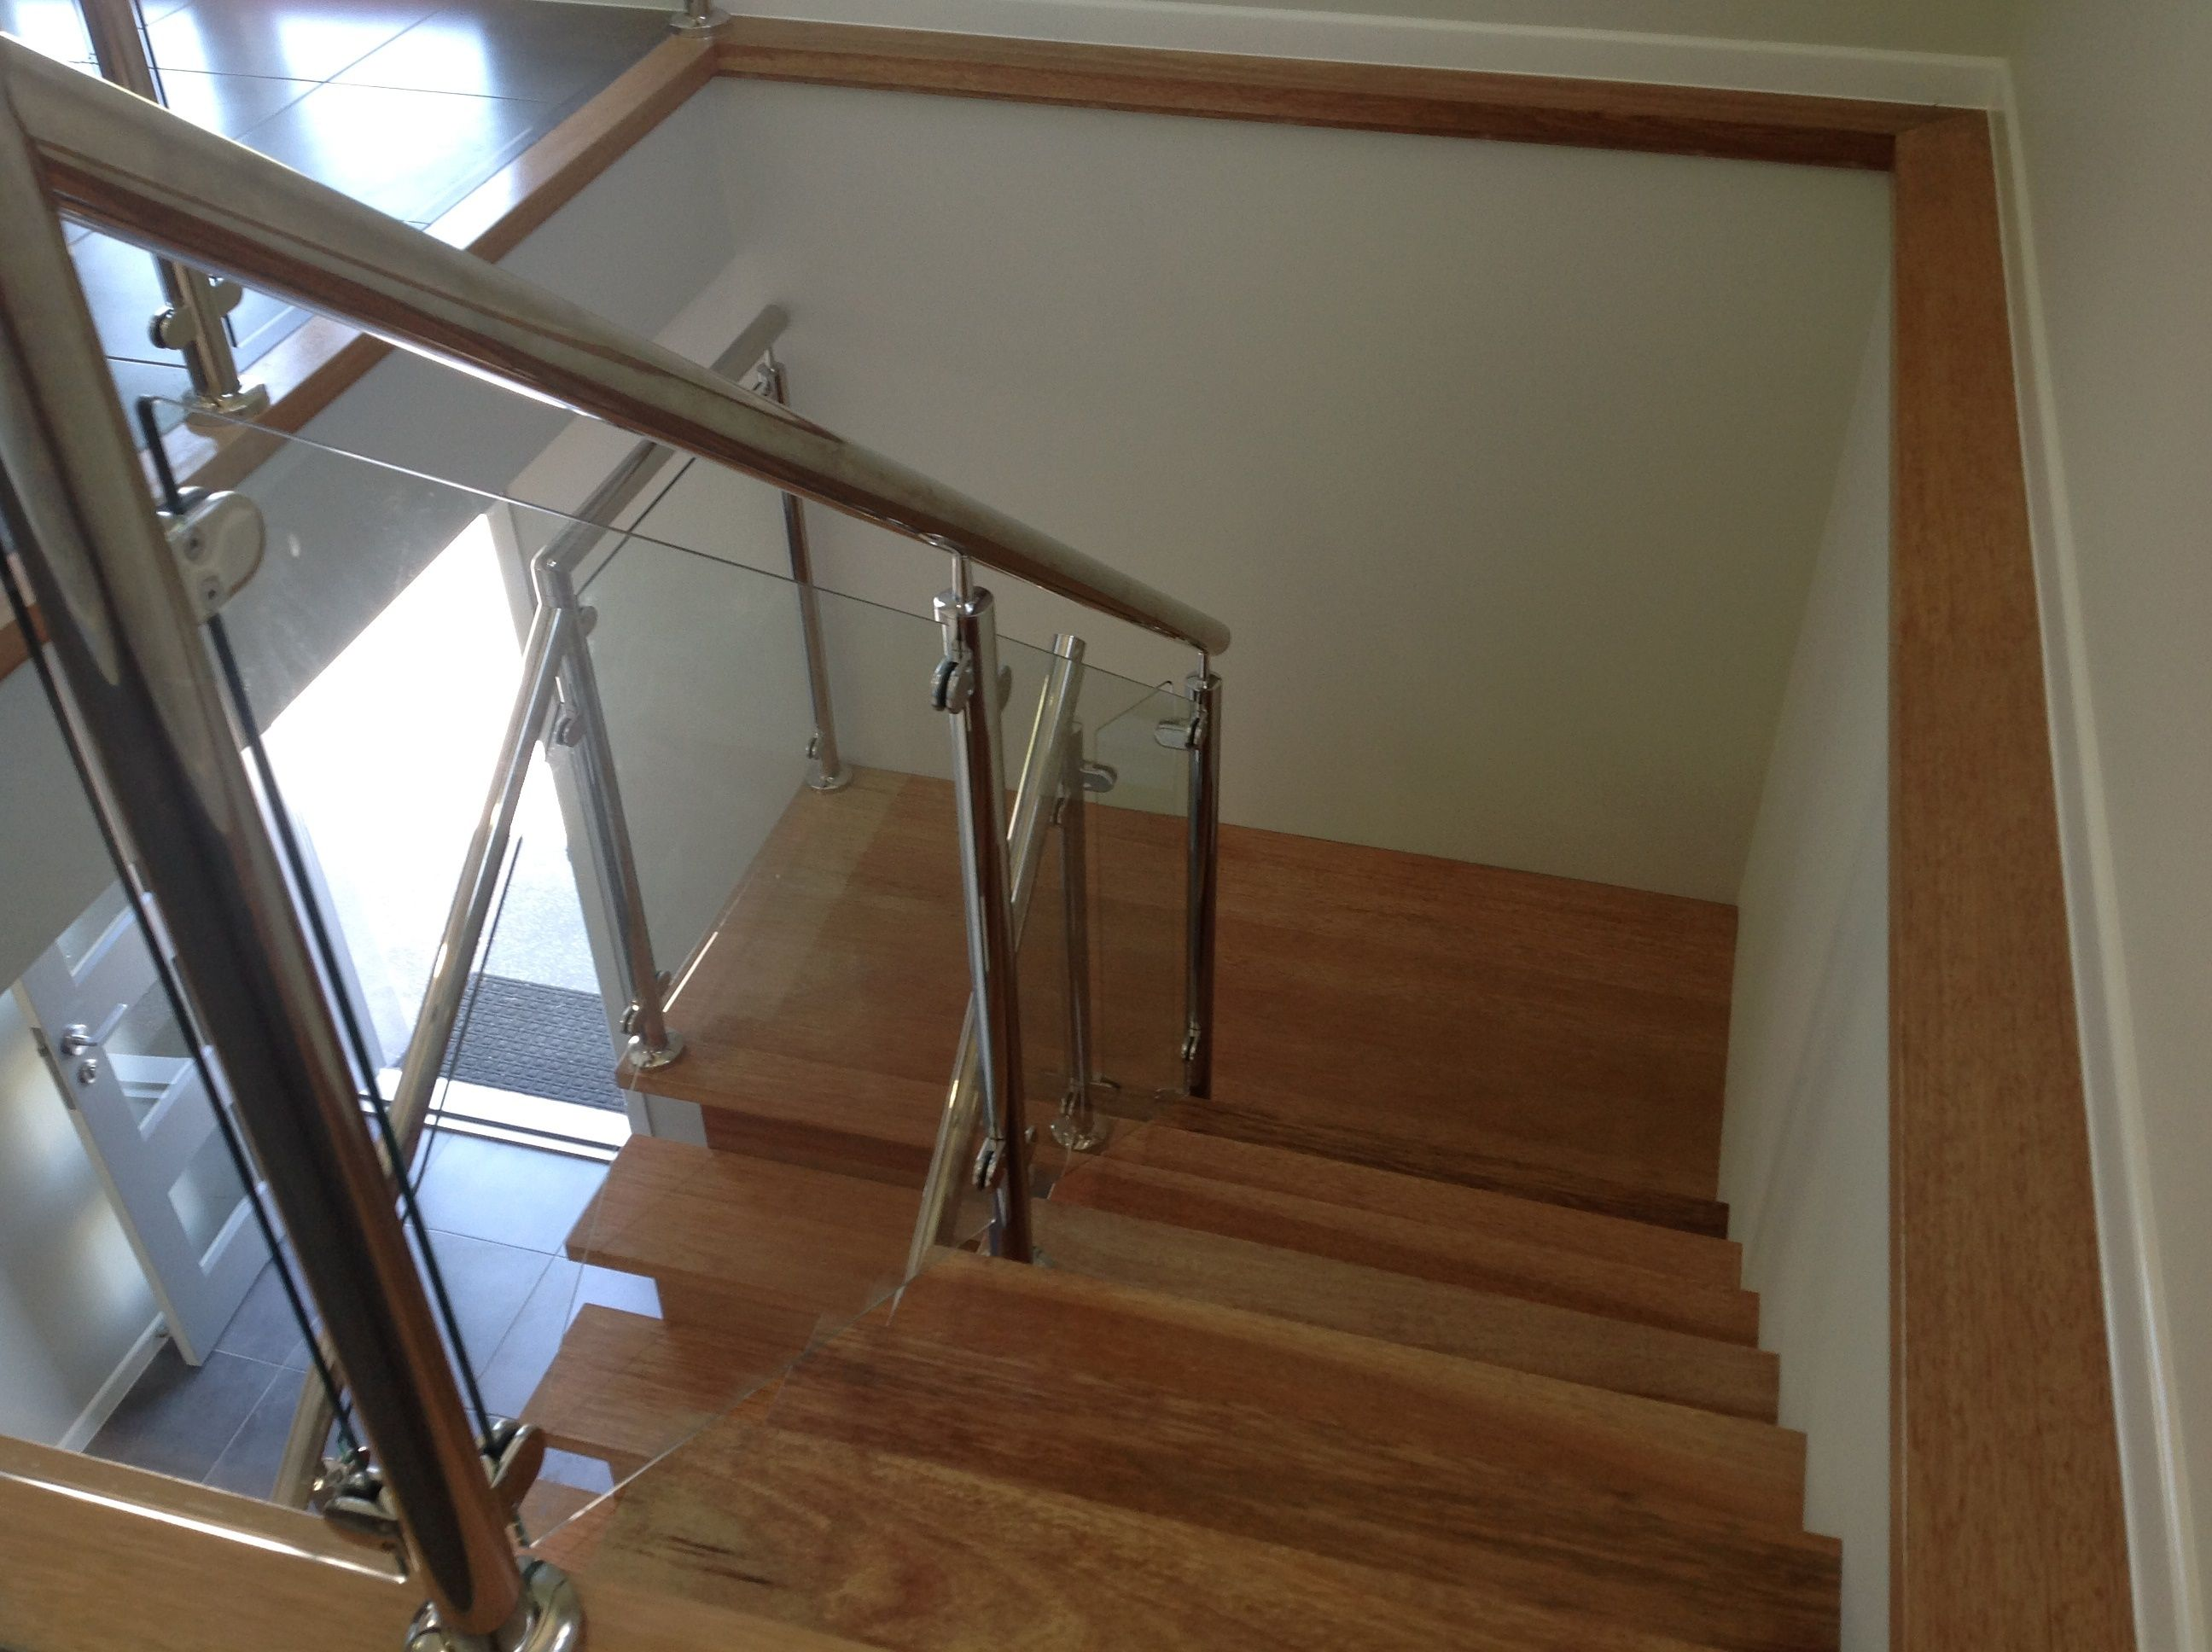 Internal Staircase  Maple Wood For The Stairs With Glass